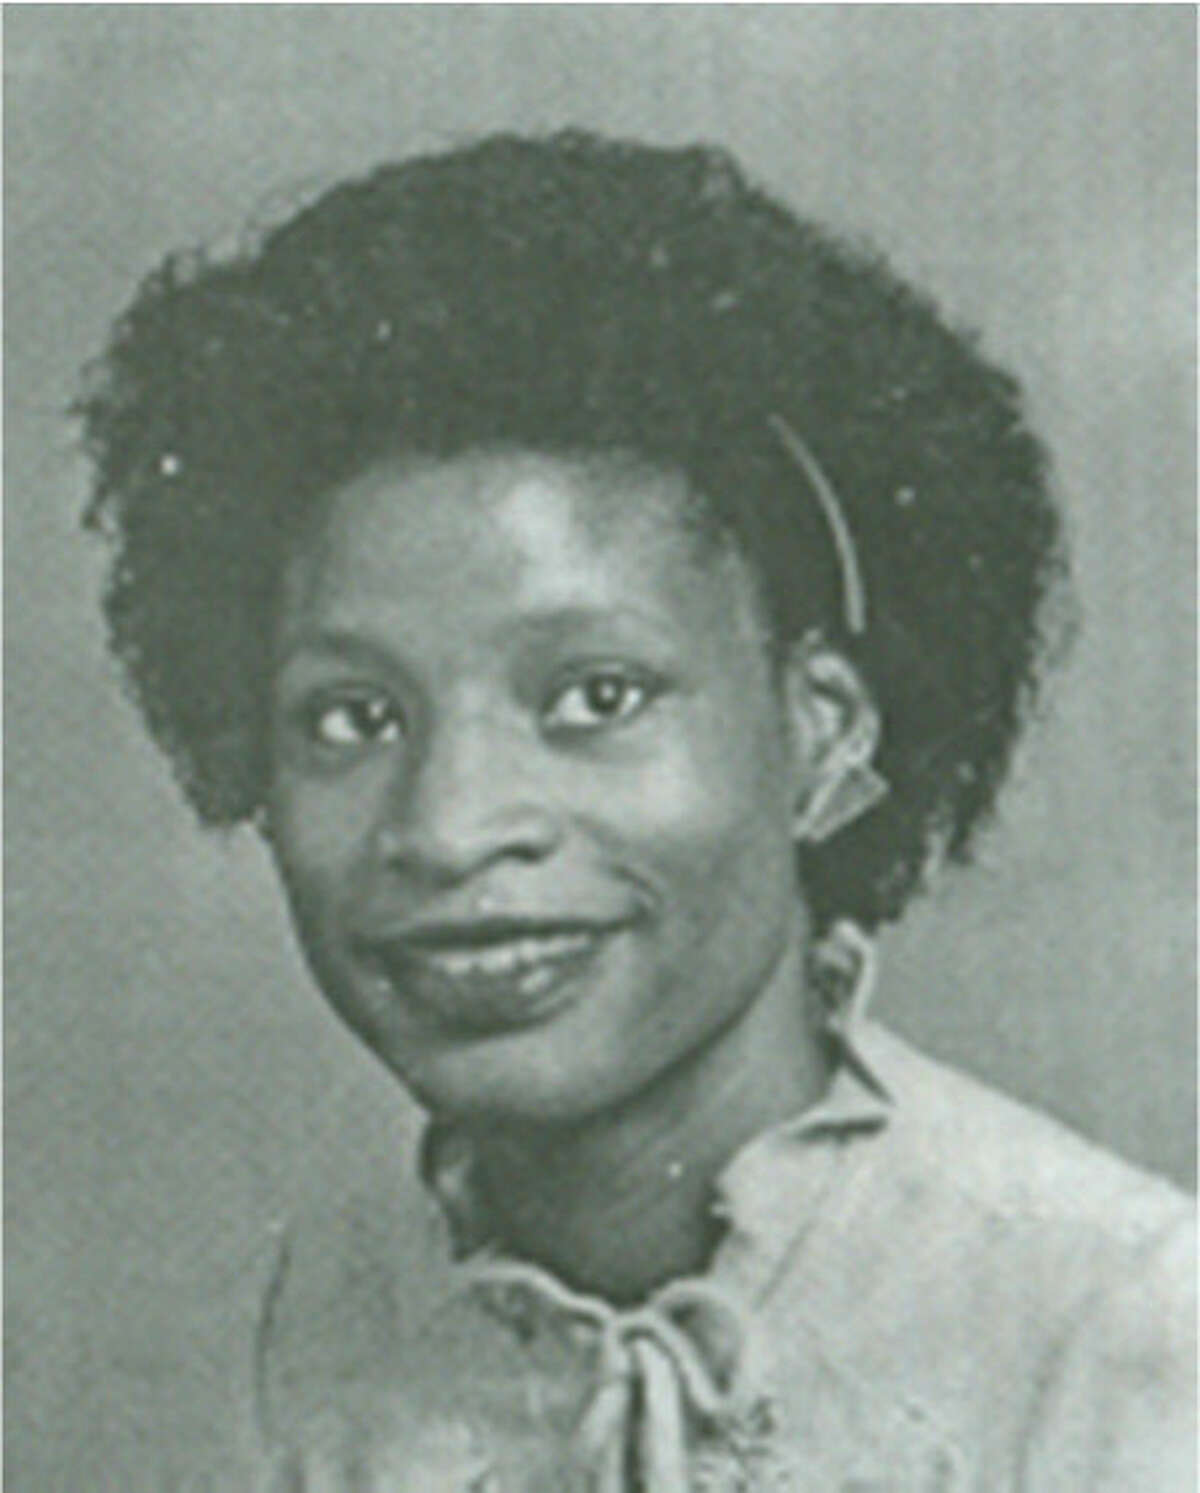 Connie Fulton Case 91/634029 Connie Fulton was 26 years old when she was found stabbed to death in the school yard of Douglas Elementary on November 28, 1991.